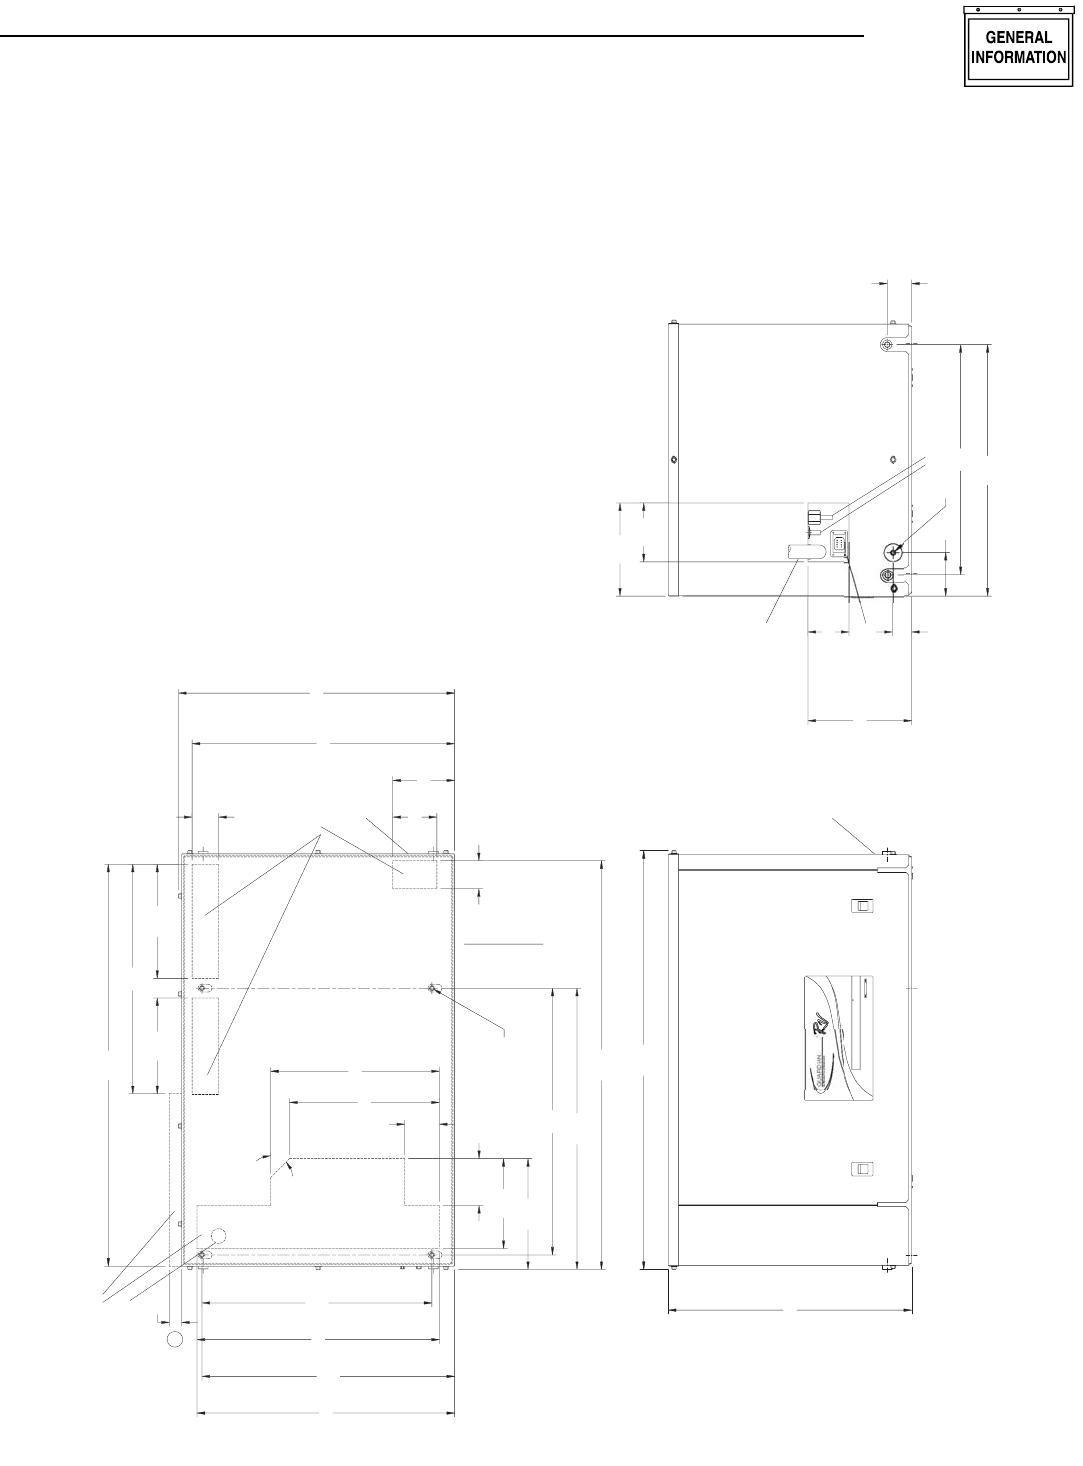 Generac 004702 0 004703 004704 004705 004706 004707 Owners Manual Remote Start Wiring Diagrams Bing Images Generacpower Systems Inc 21